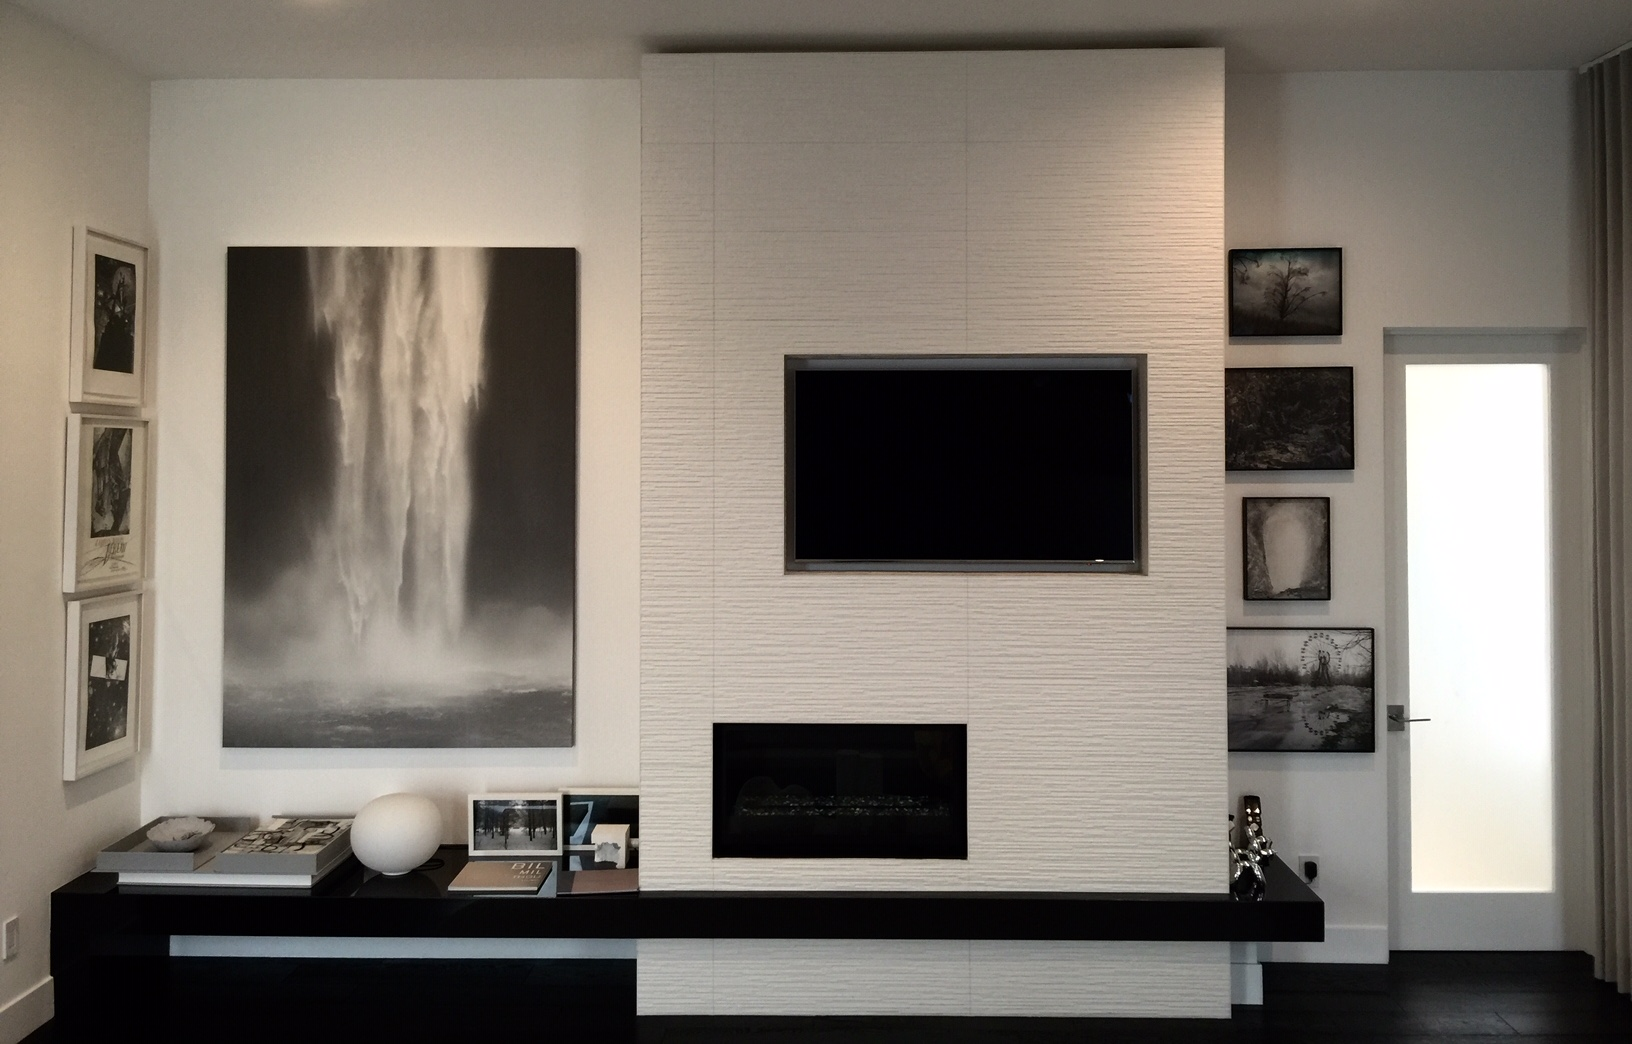 Painting by Christina Craemer, on the left wall are prints by Lebbeus Woods (left) and Todd Hido (right). Courtesy of Melissa de la Cruz and Michael Johnston.